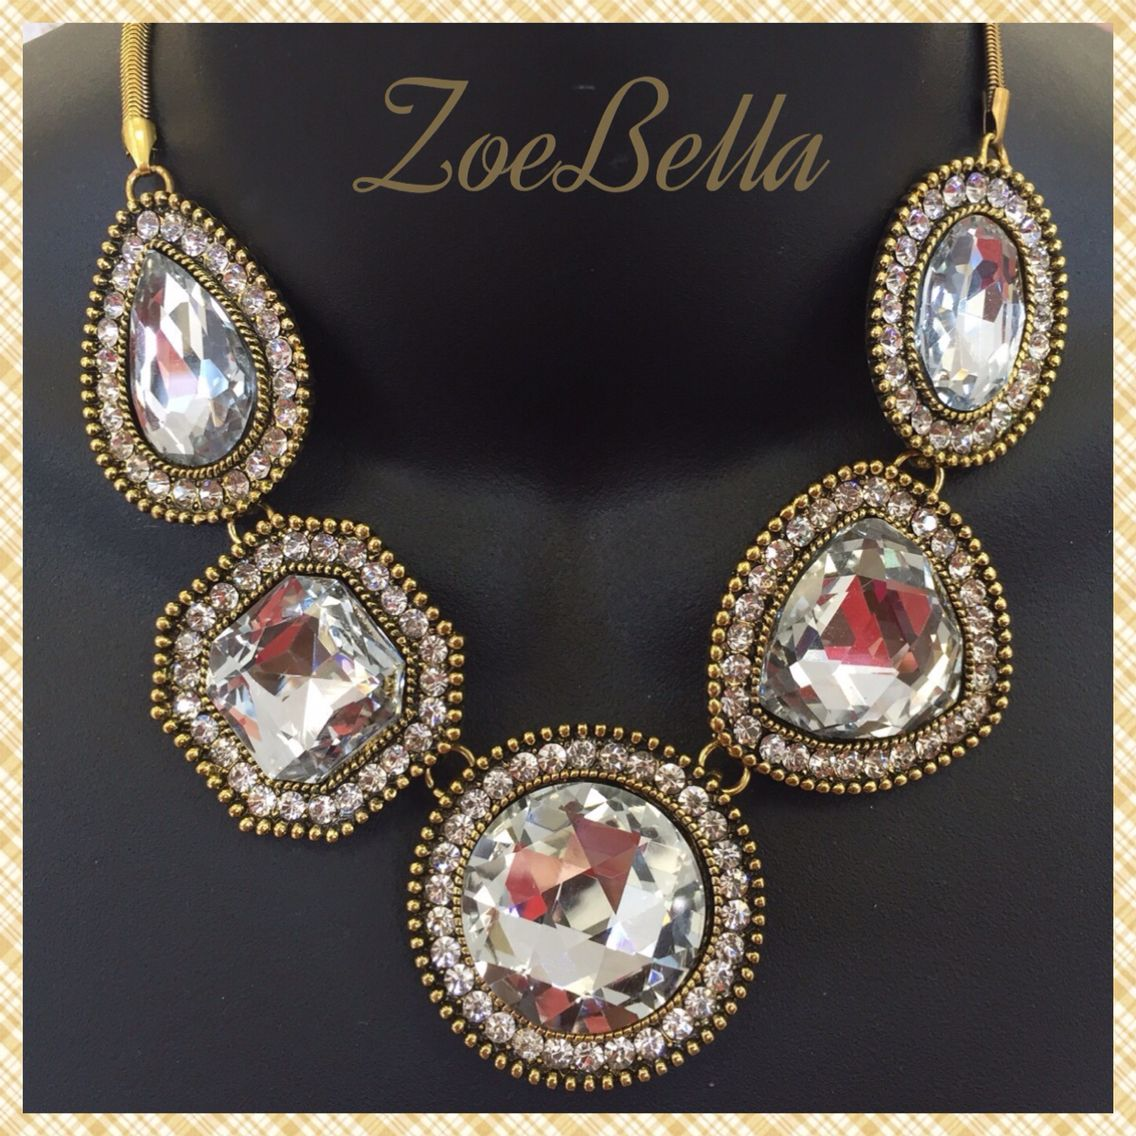 This beauty is 20% off now! Get your mother a gift she'll cherish! Shop our online boutique now! Don't wait until the last minute, use code #IHEARTMOM   Www.zoebellaboutique.com